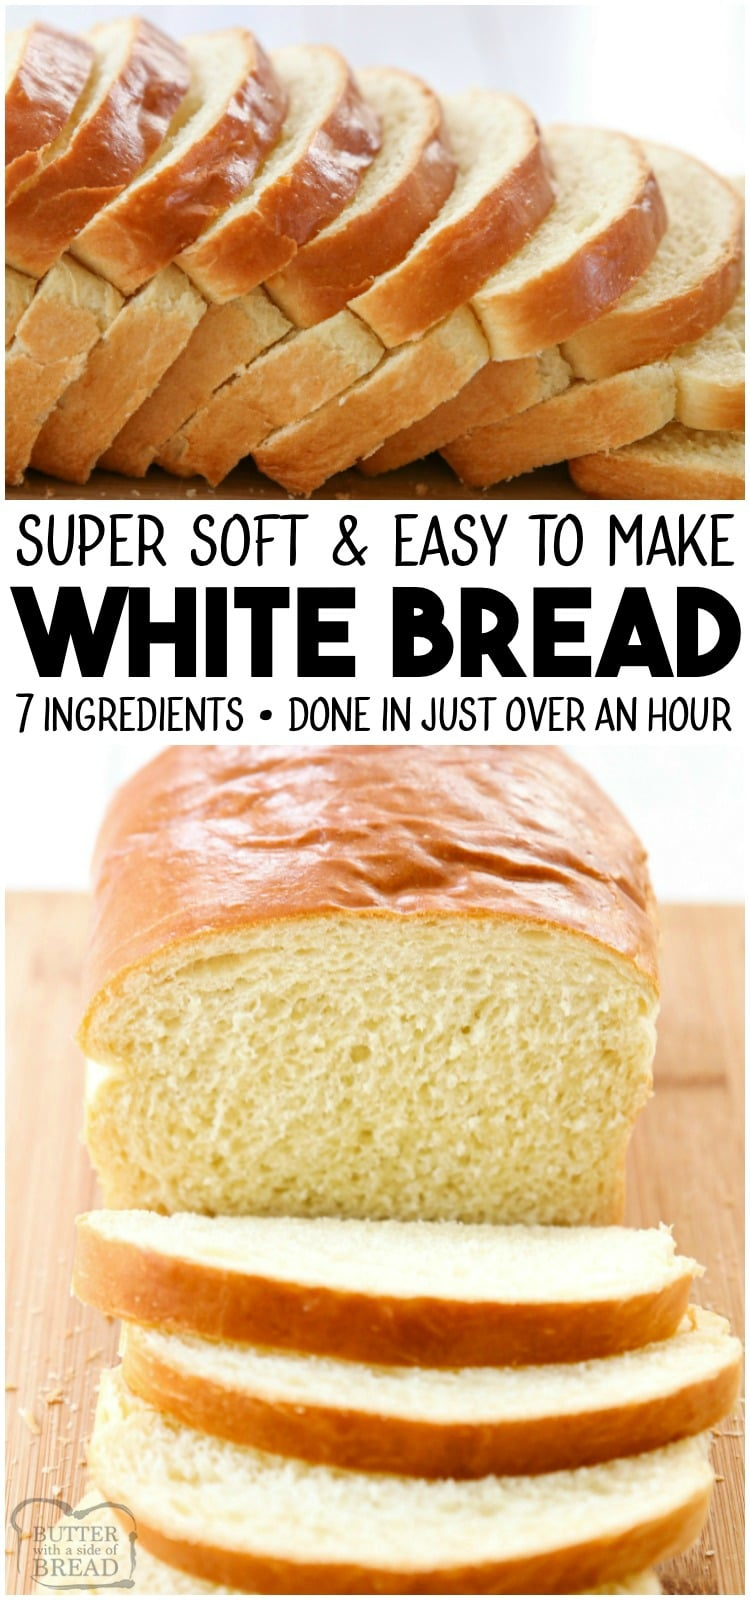 White Bread recipe made with basic ingredients & detailed instructions showing how to make bread! Done in just over an hour this recipeis one of the best soft white sandwich bread recipes.#bread #sandwich #whitebread #homemade #yeast #baking #recipe from BUTTER WITH A SIDE OF BREAD